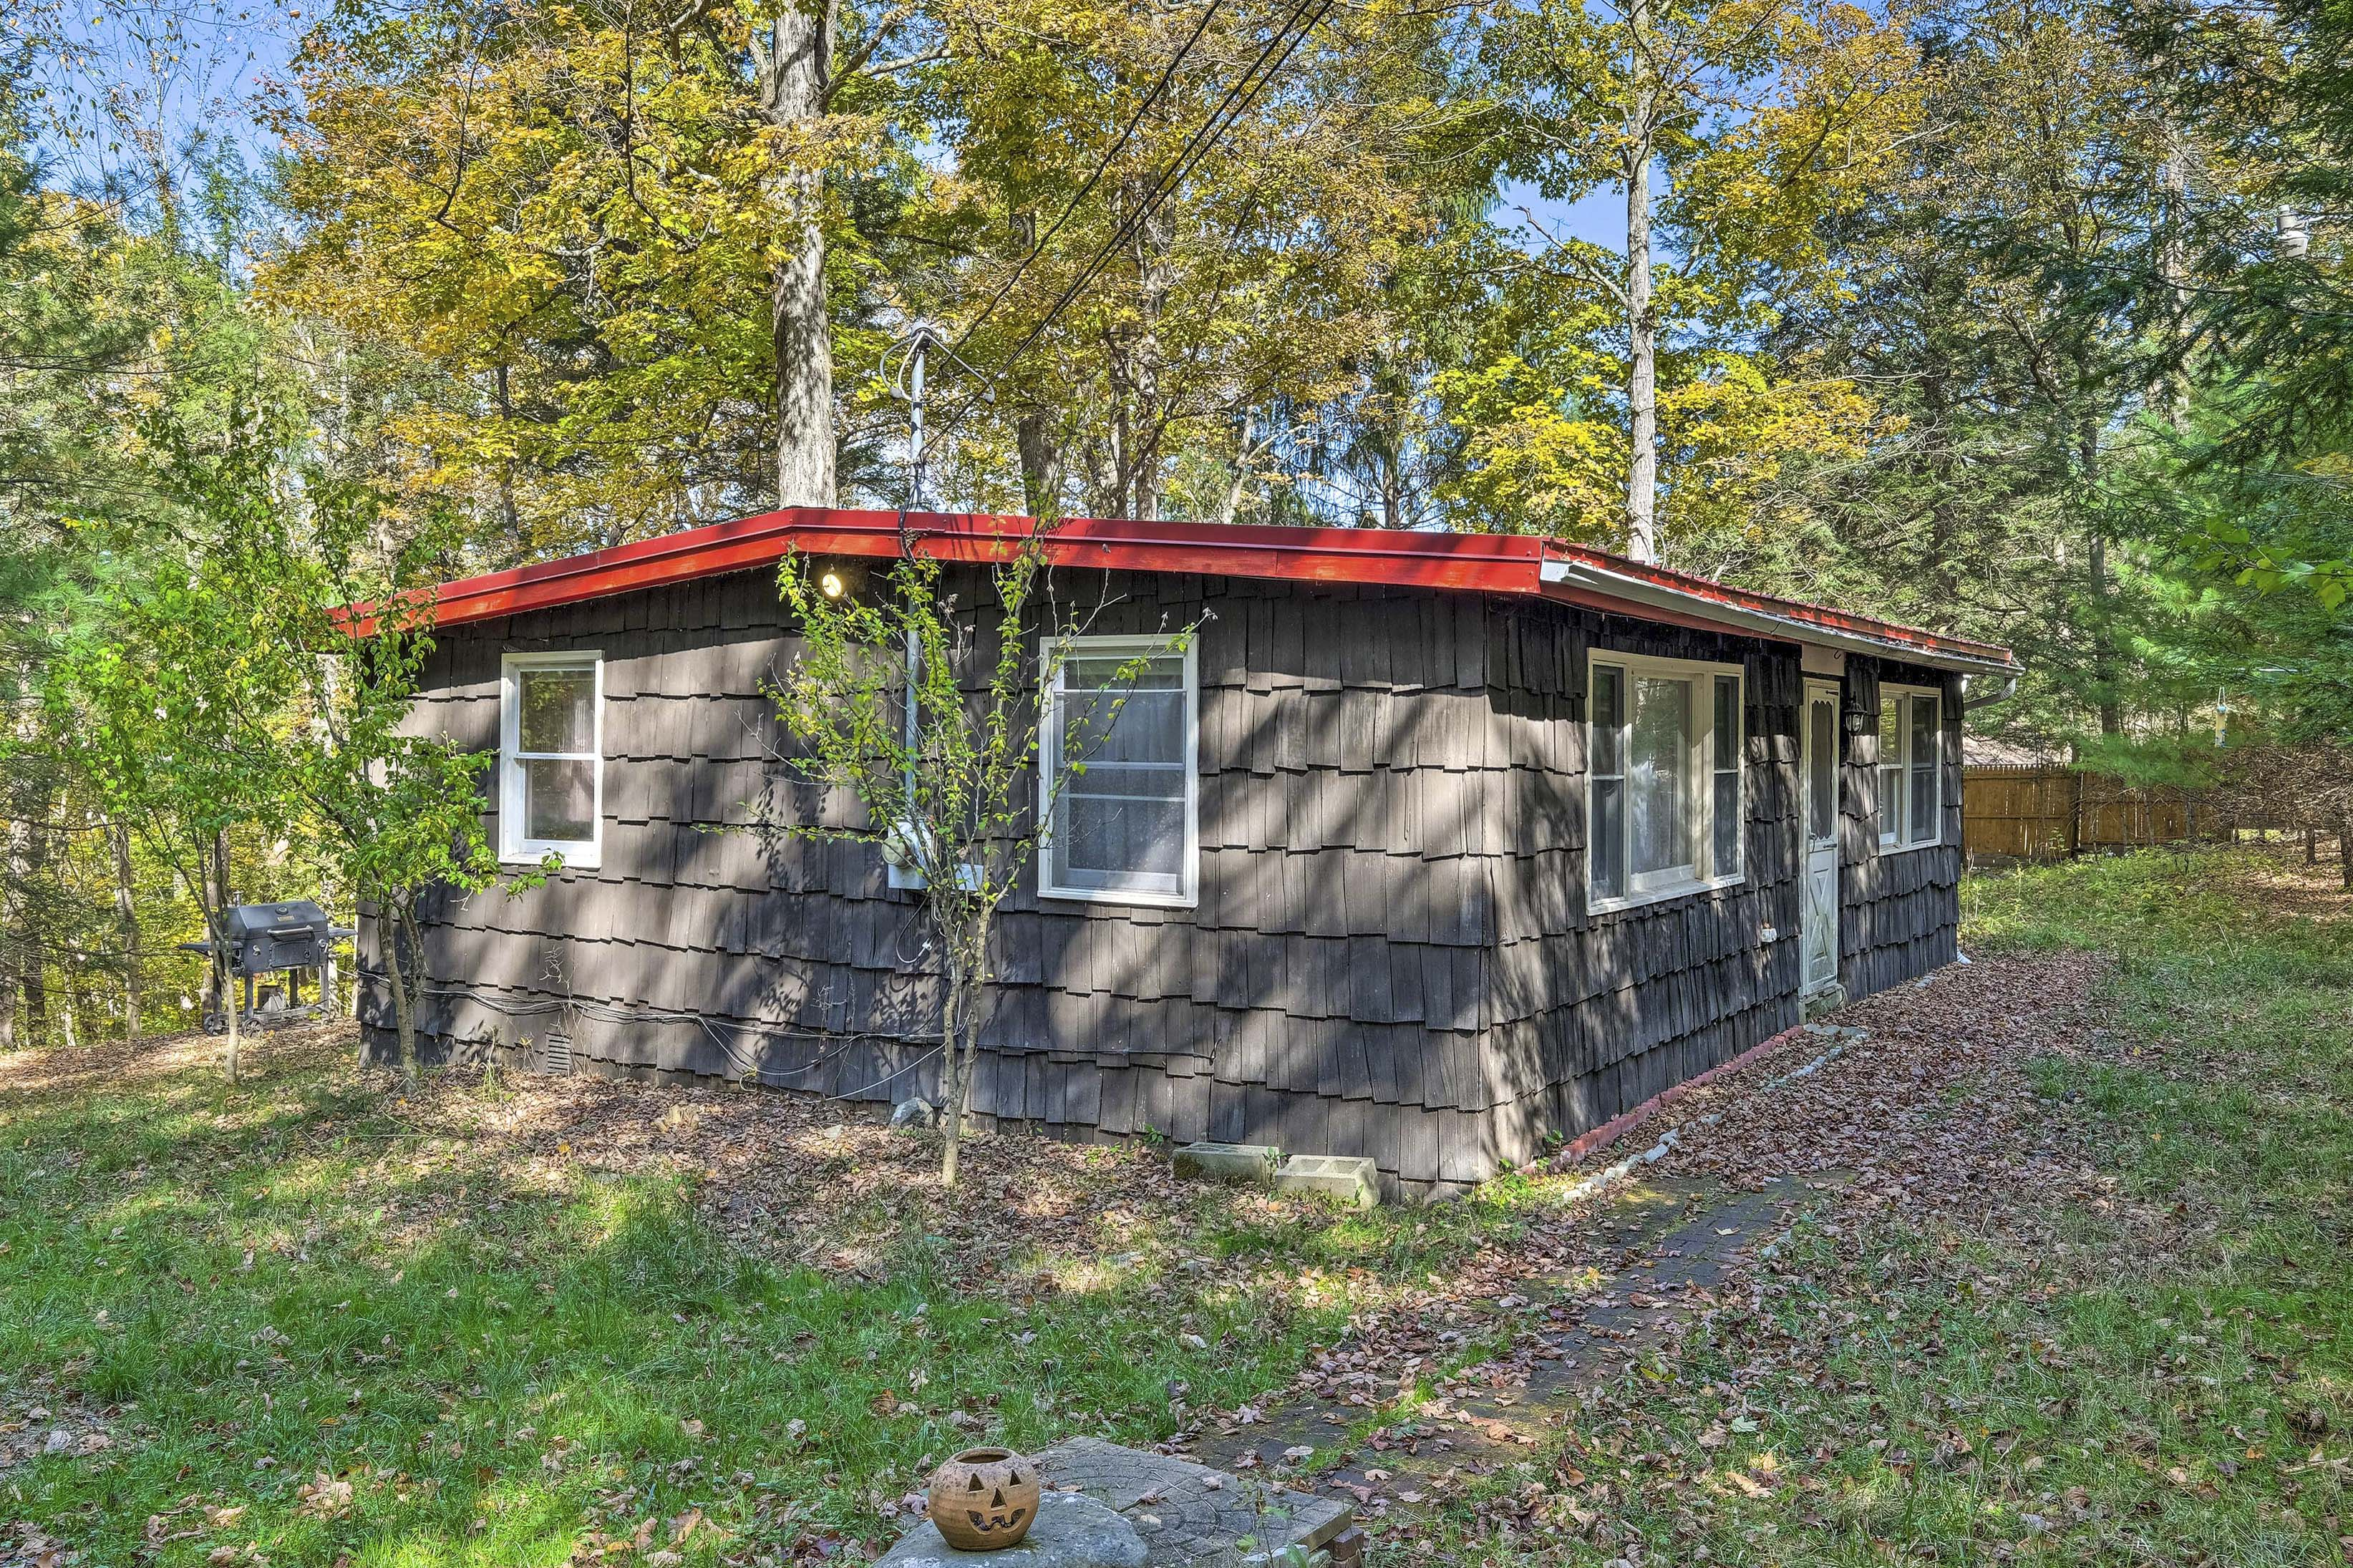 Claim this 3-bed, 2-bath home as your own.